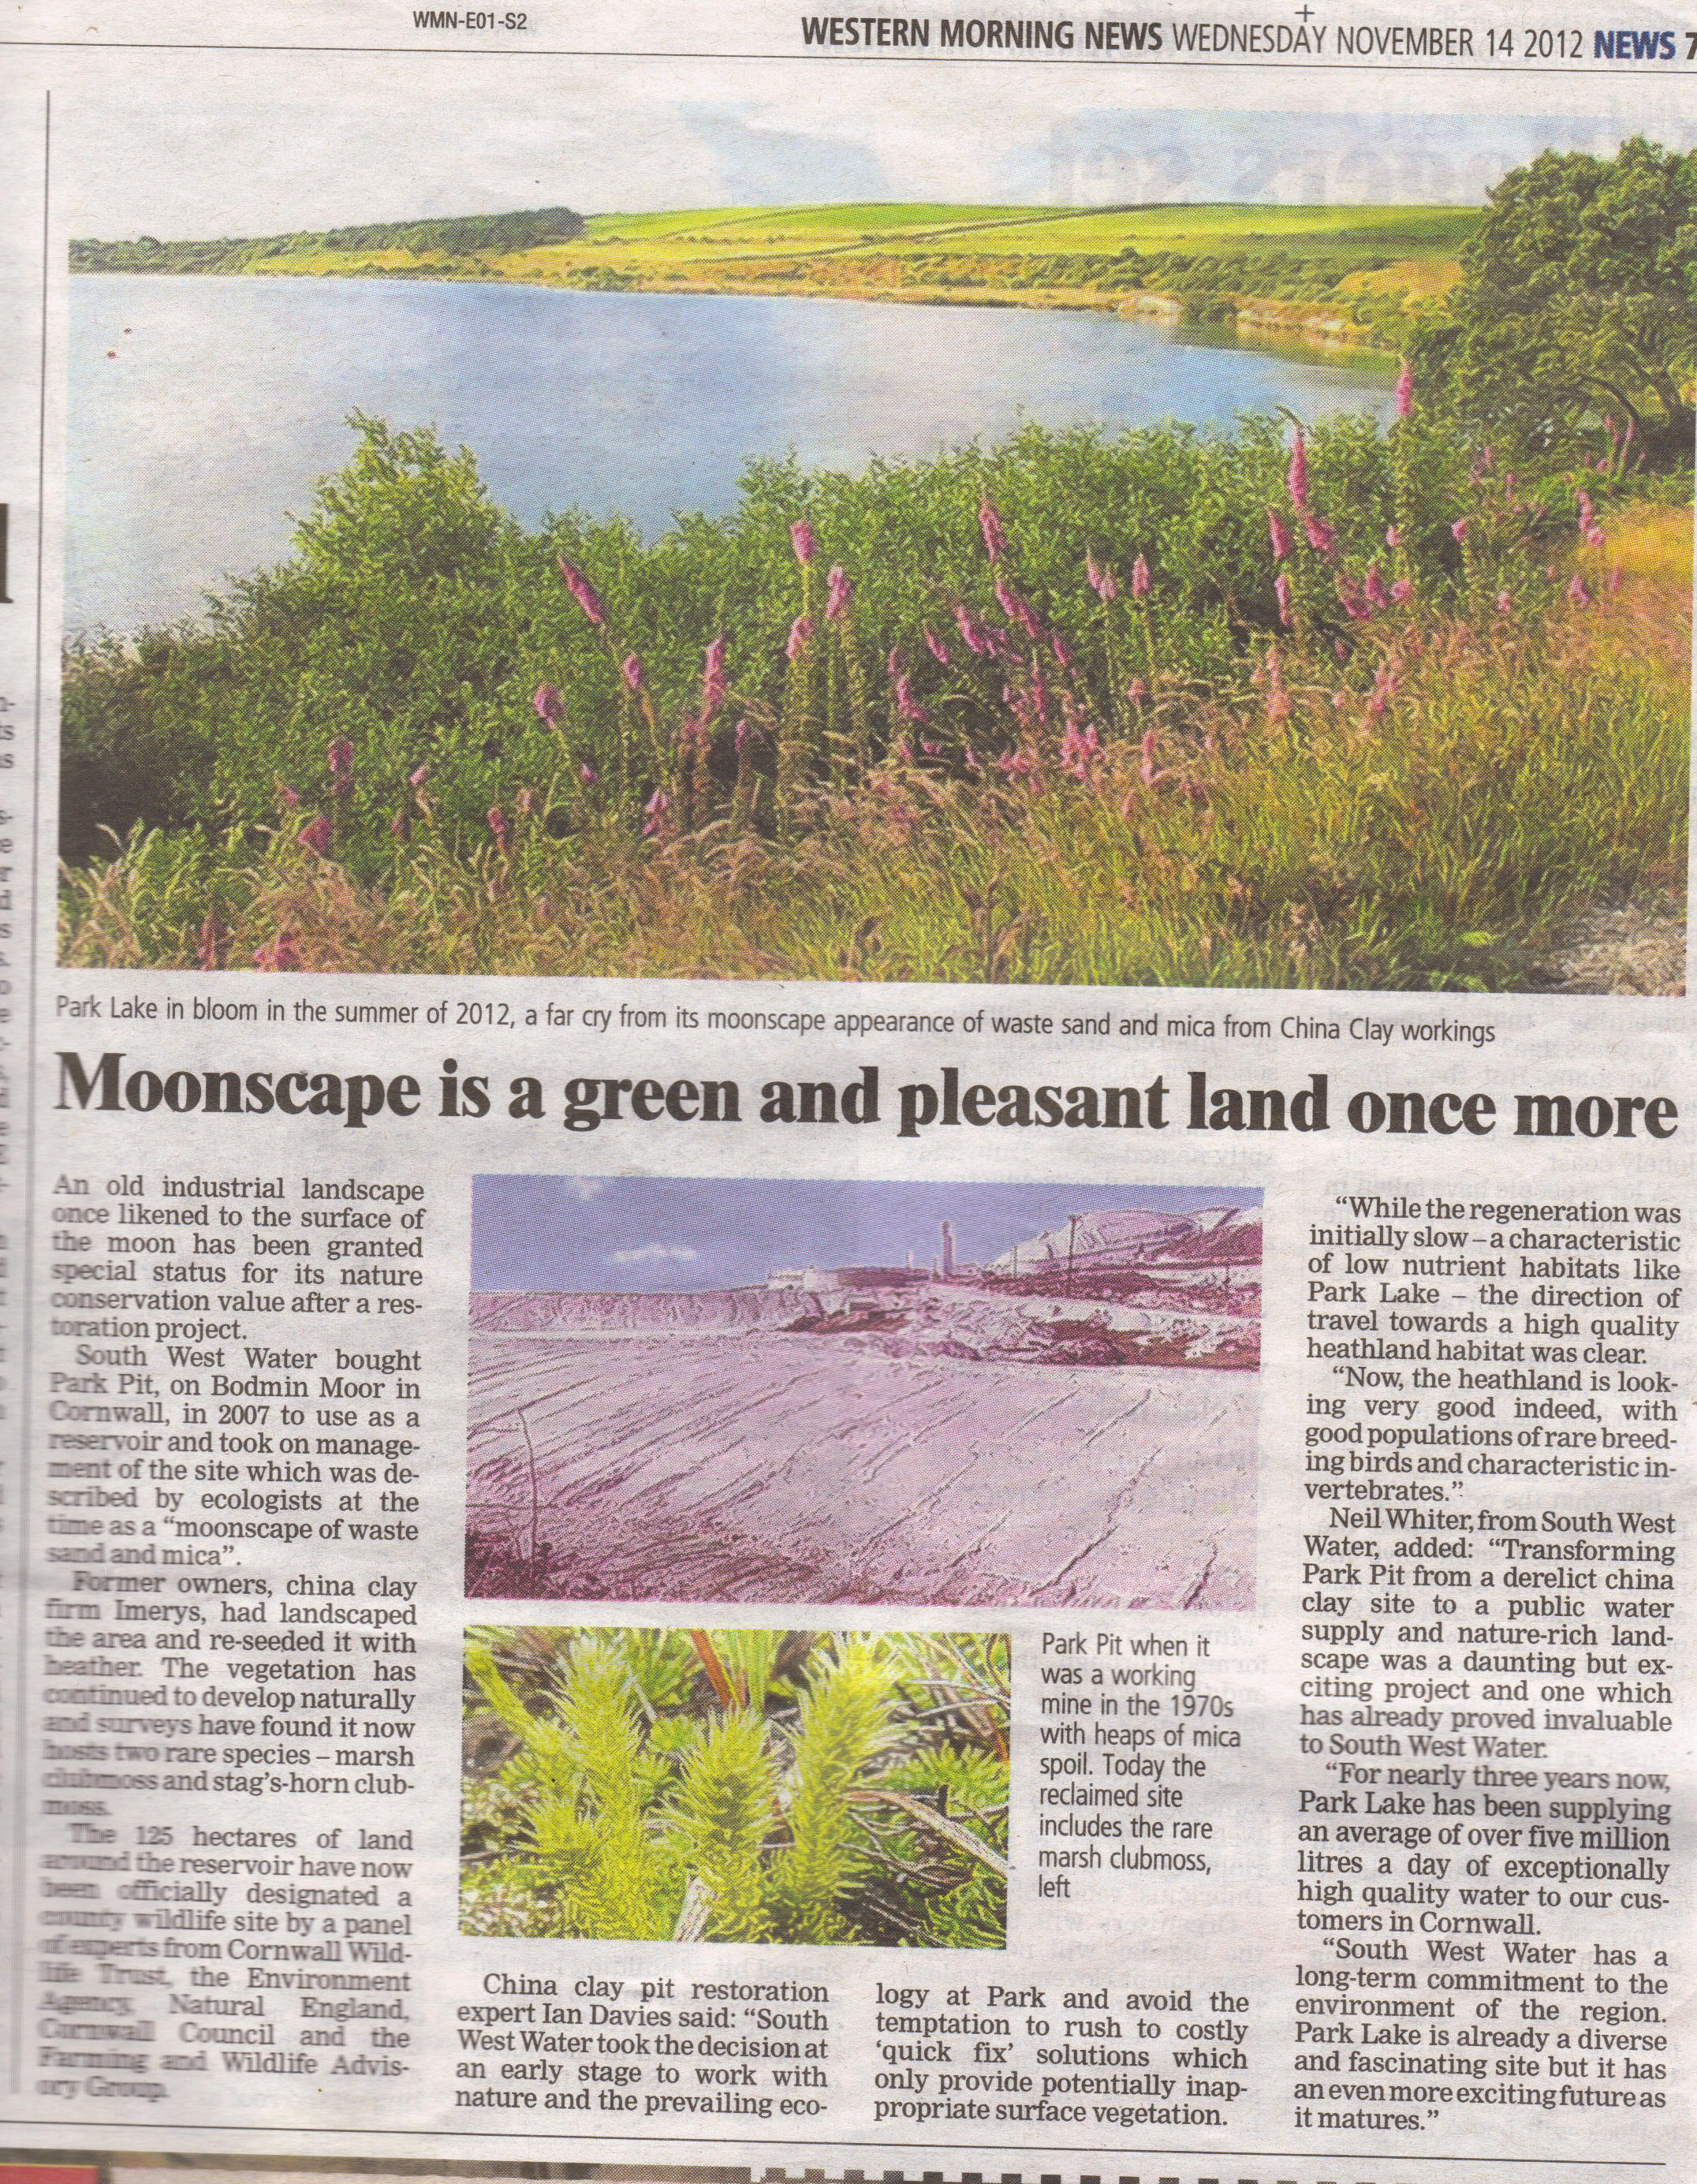 Western Morning News Moonscape article